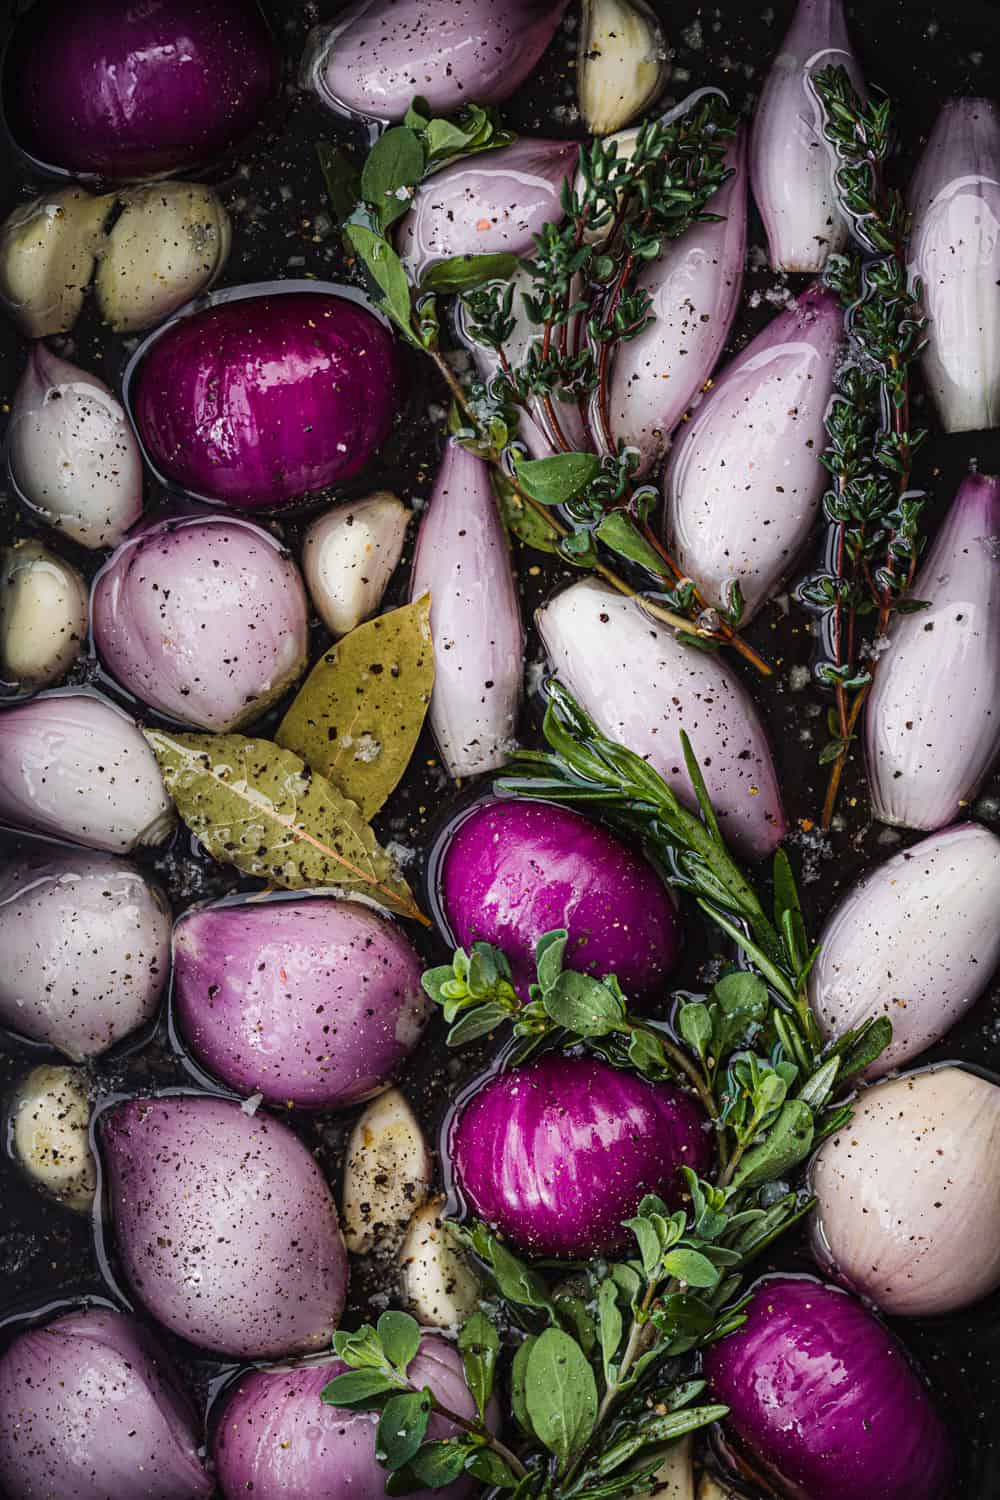 Shallot confit in the making! Whole and halved raw shallots submerged in olive oil with garlic, bay leaves, fresh herbs, salt and pepper; overhead shot.